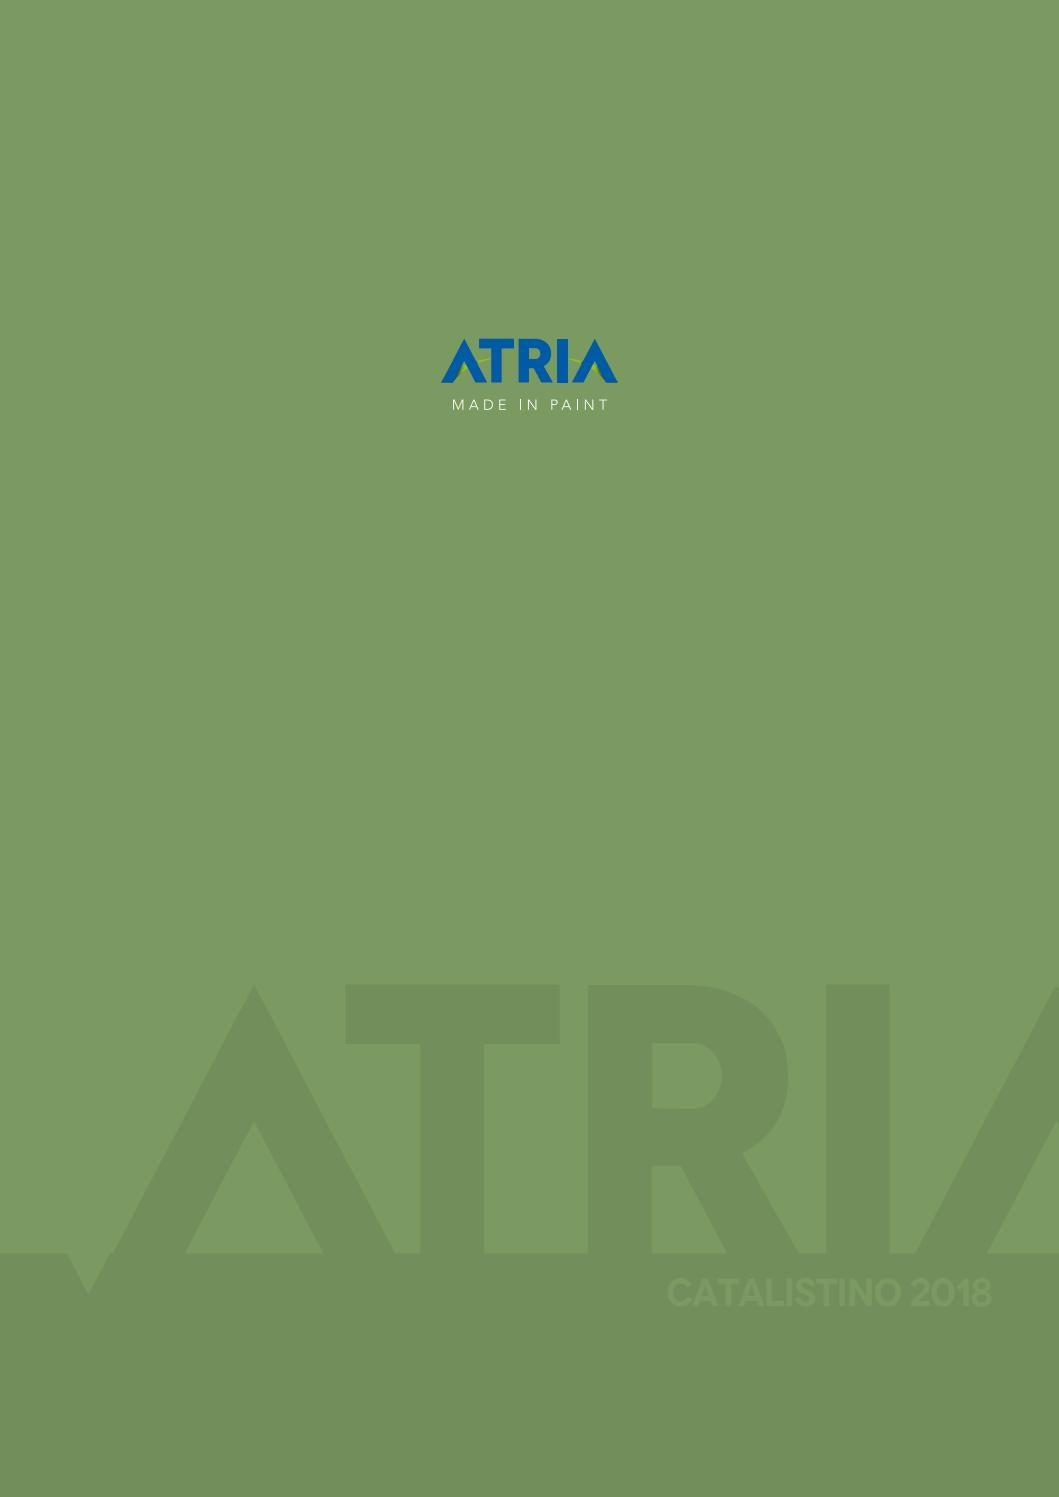 Pittura Termica Atria Catalistino Atria 2018 By Atriabox Issuu